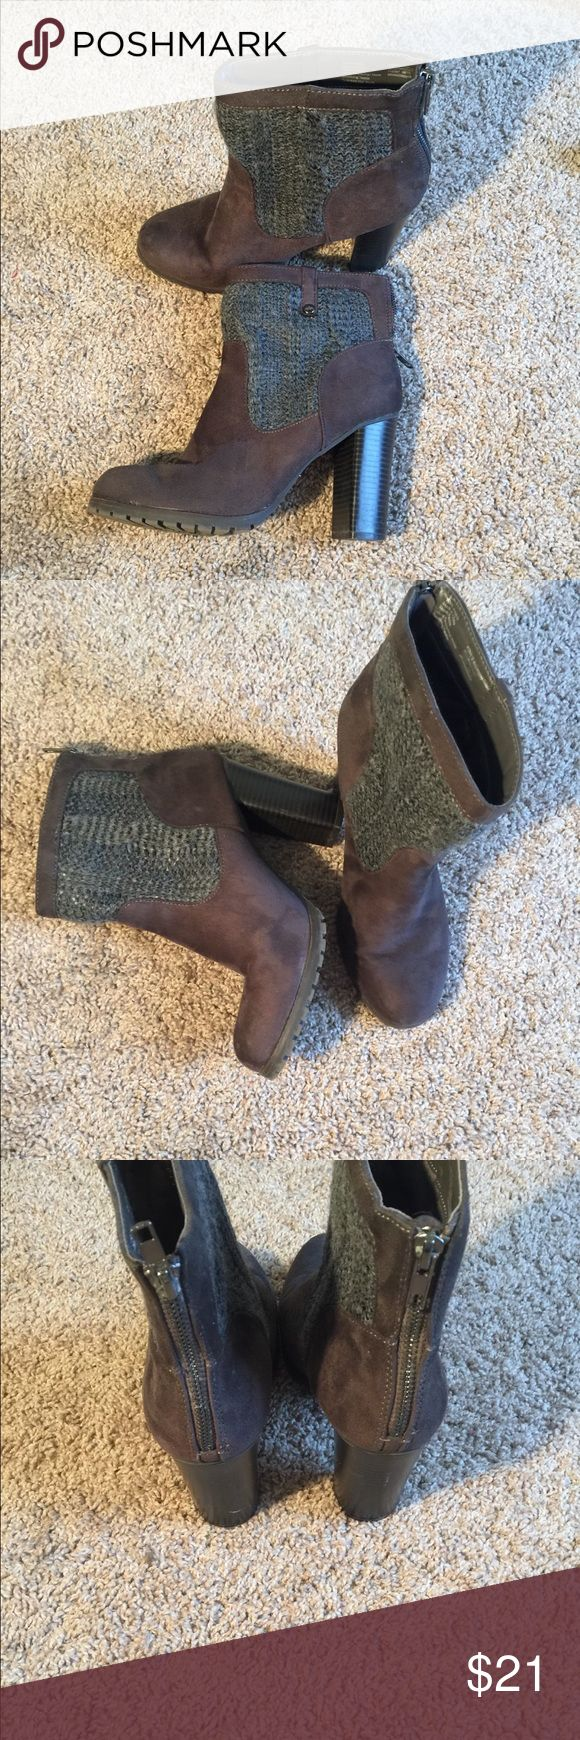 Juicy Couture brown ankle boots size 9 Juicy Couture Brown ankle boots with grey sweater top design. Gently worn size 9 Juicy Couture Shoes Ankle Boots & Booties